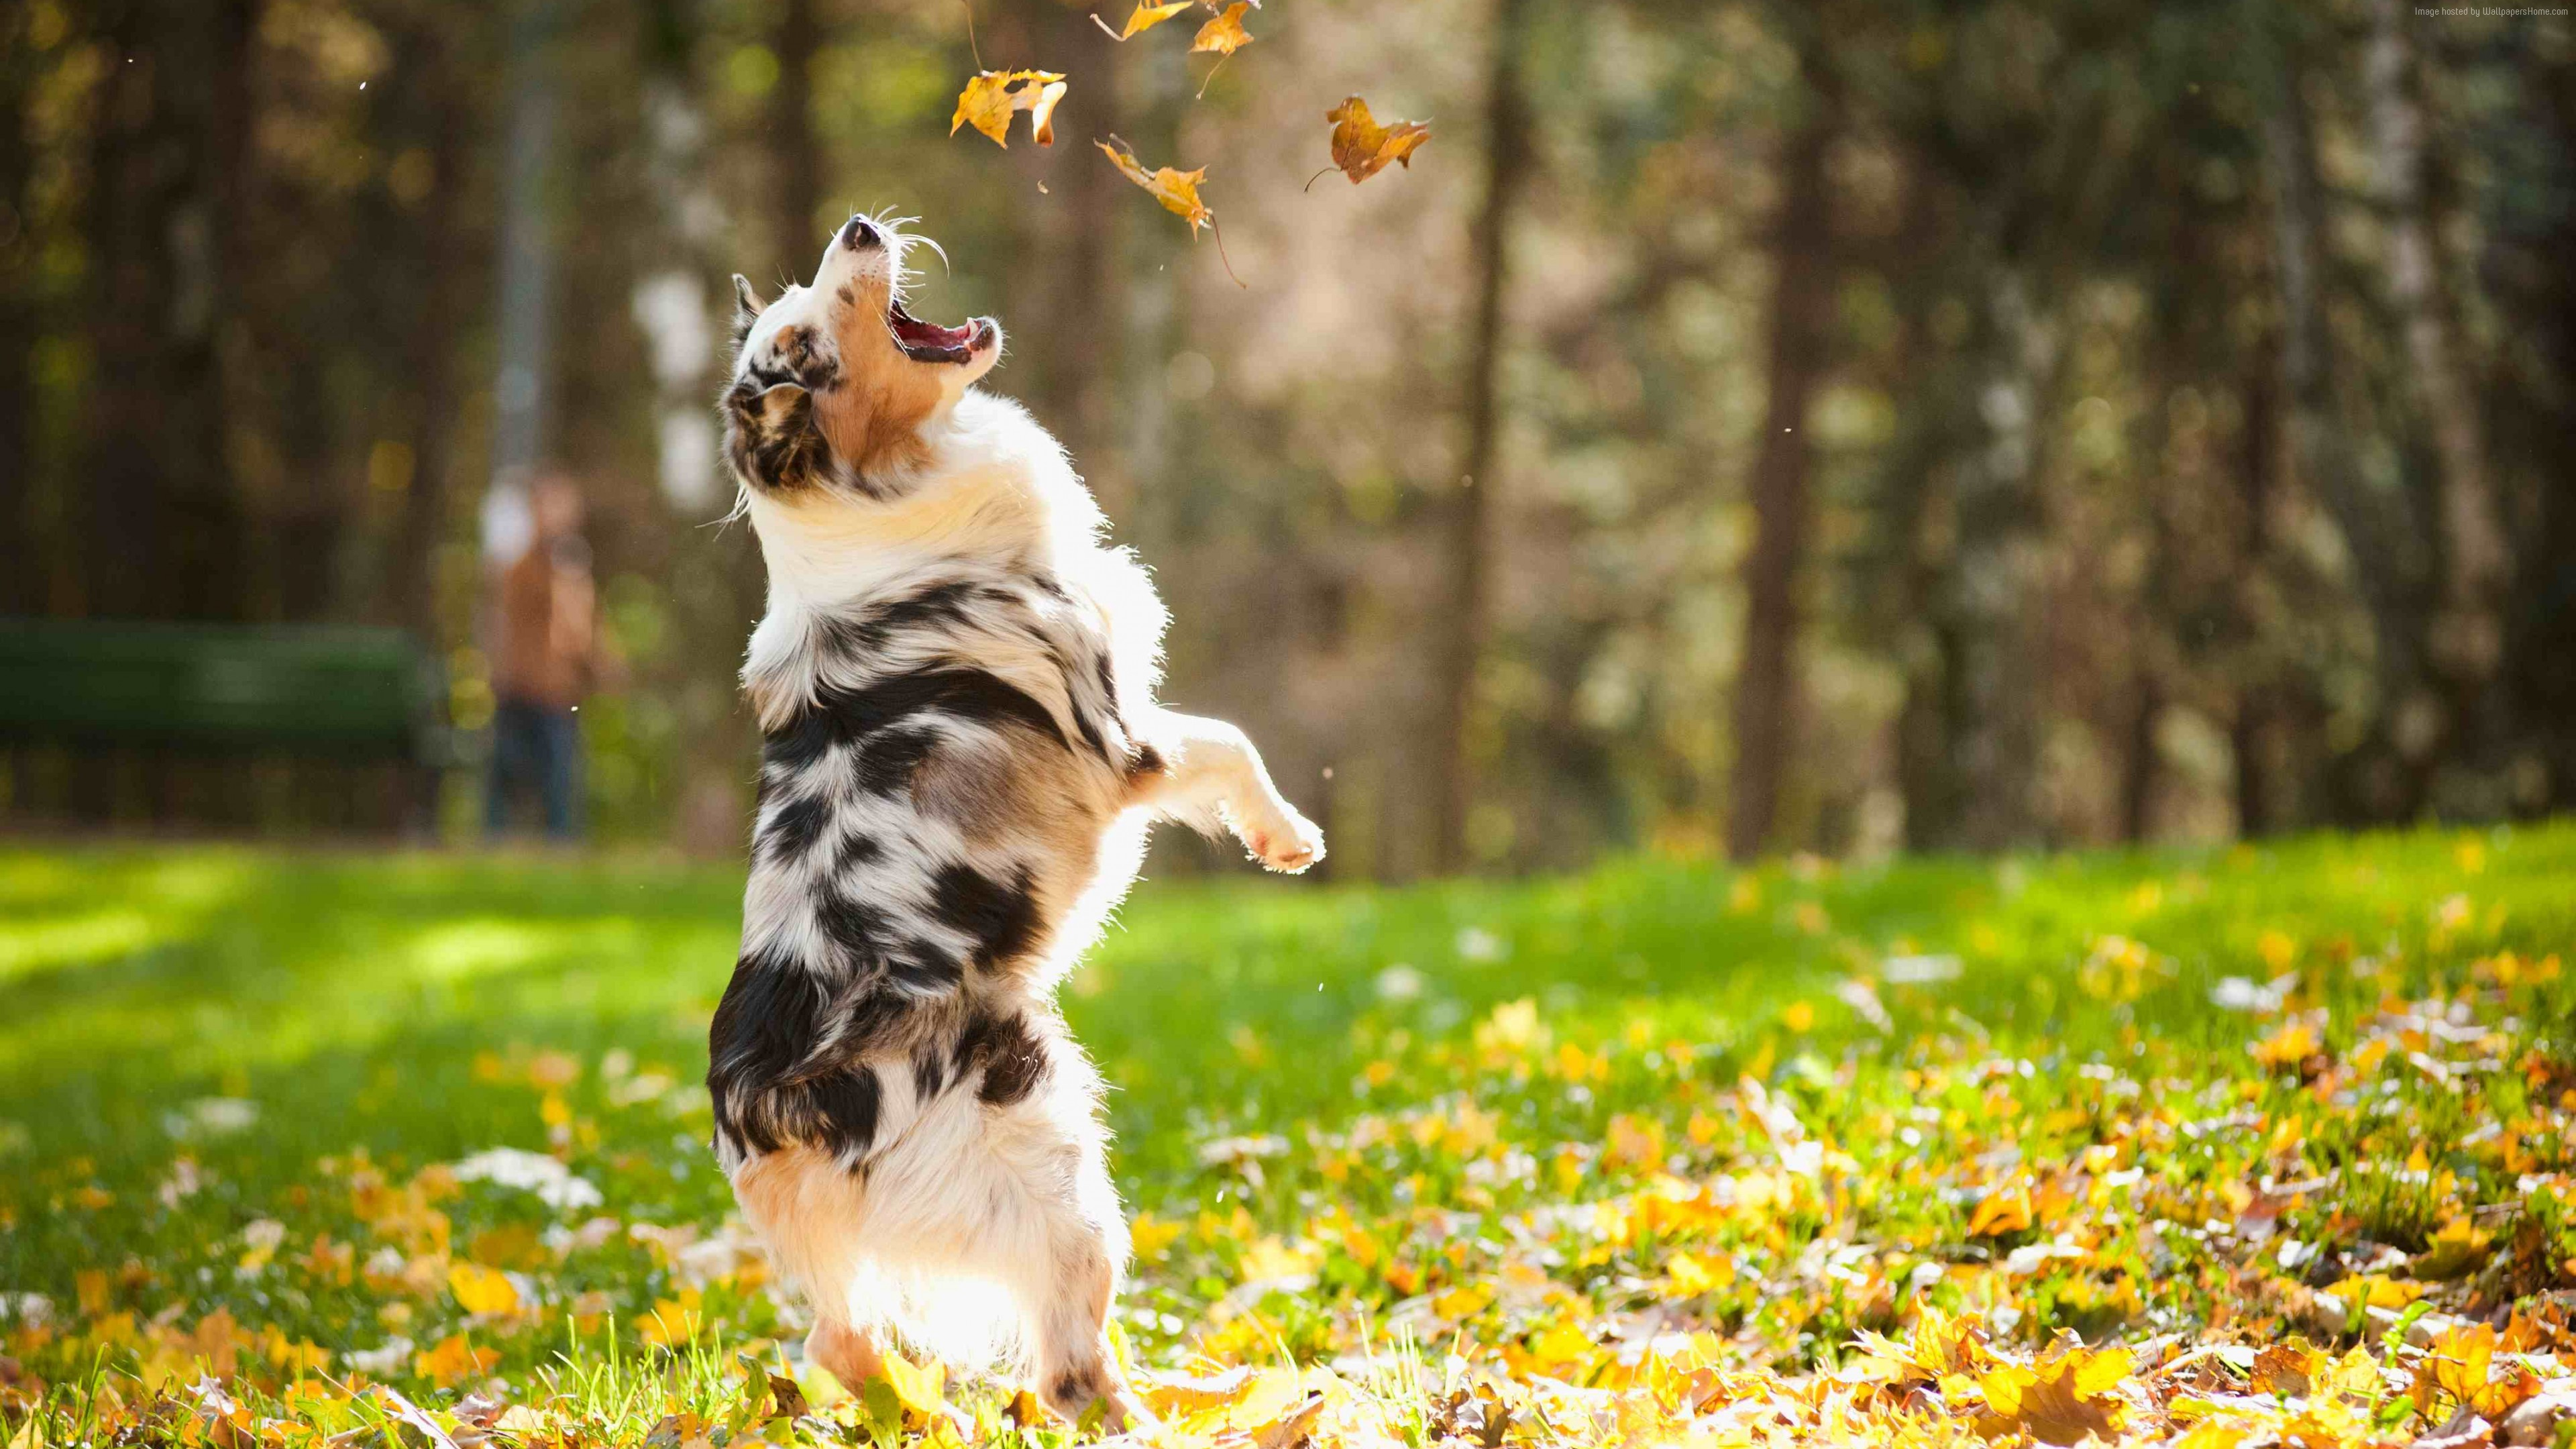 Wallpaper Dog, puppy, jumping, leaves, autumn, pet, green grass, park, Animals